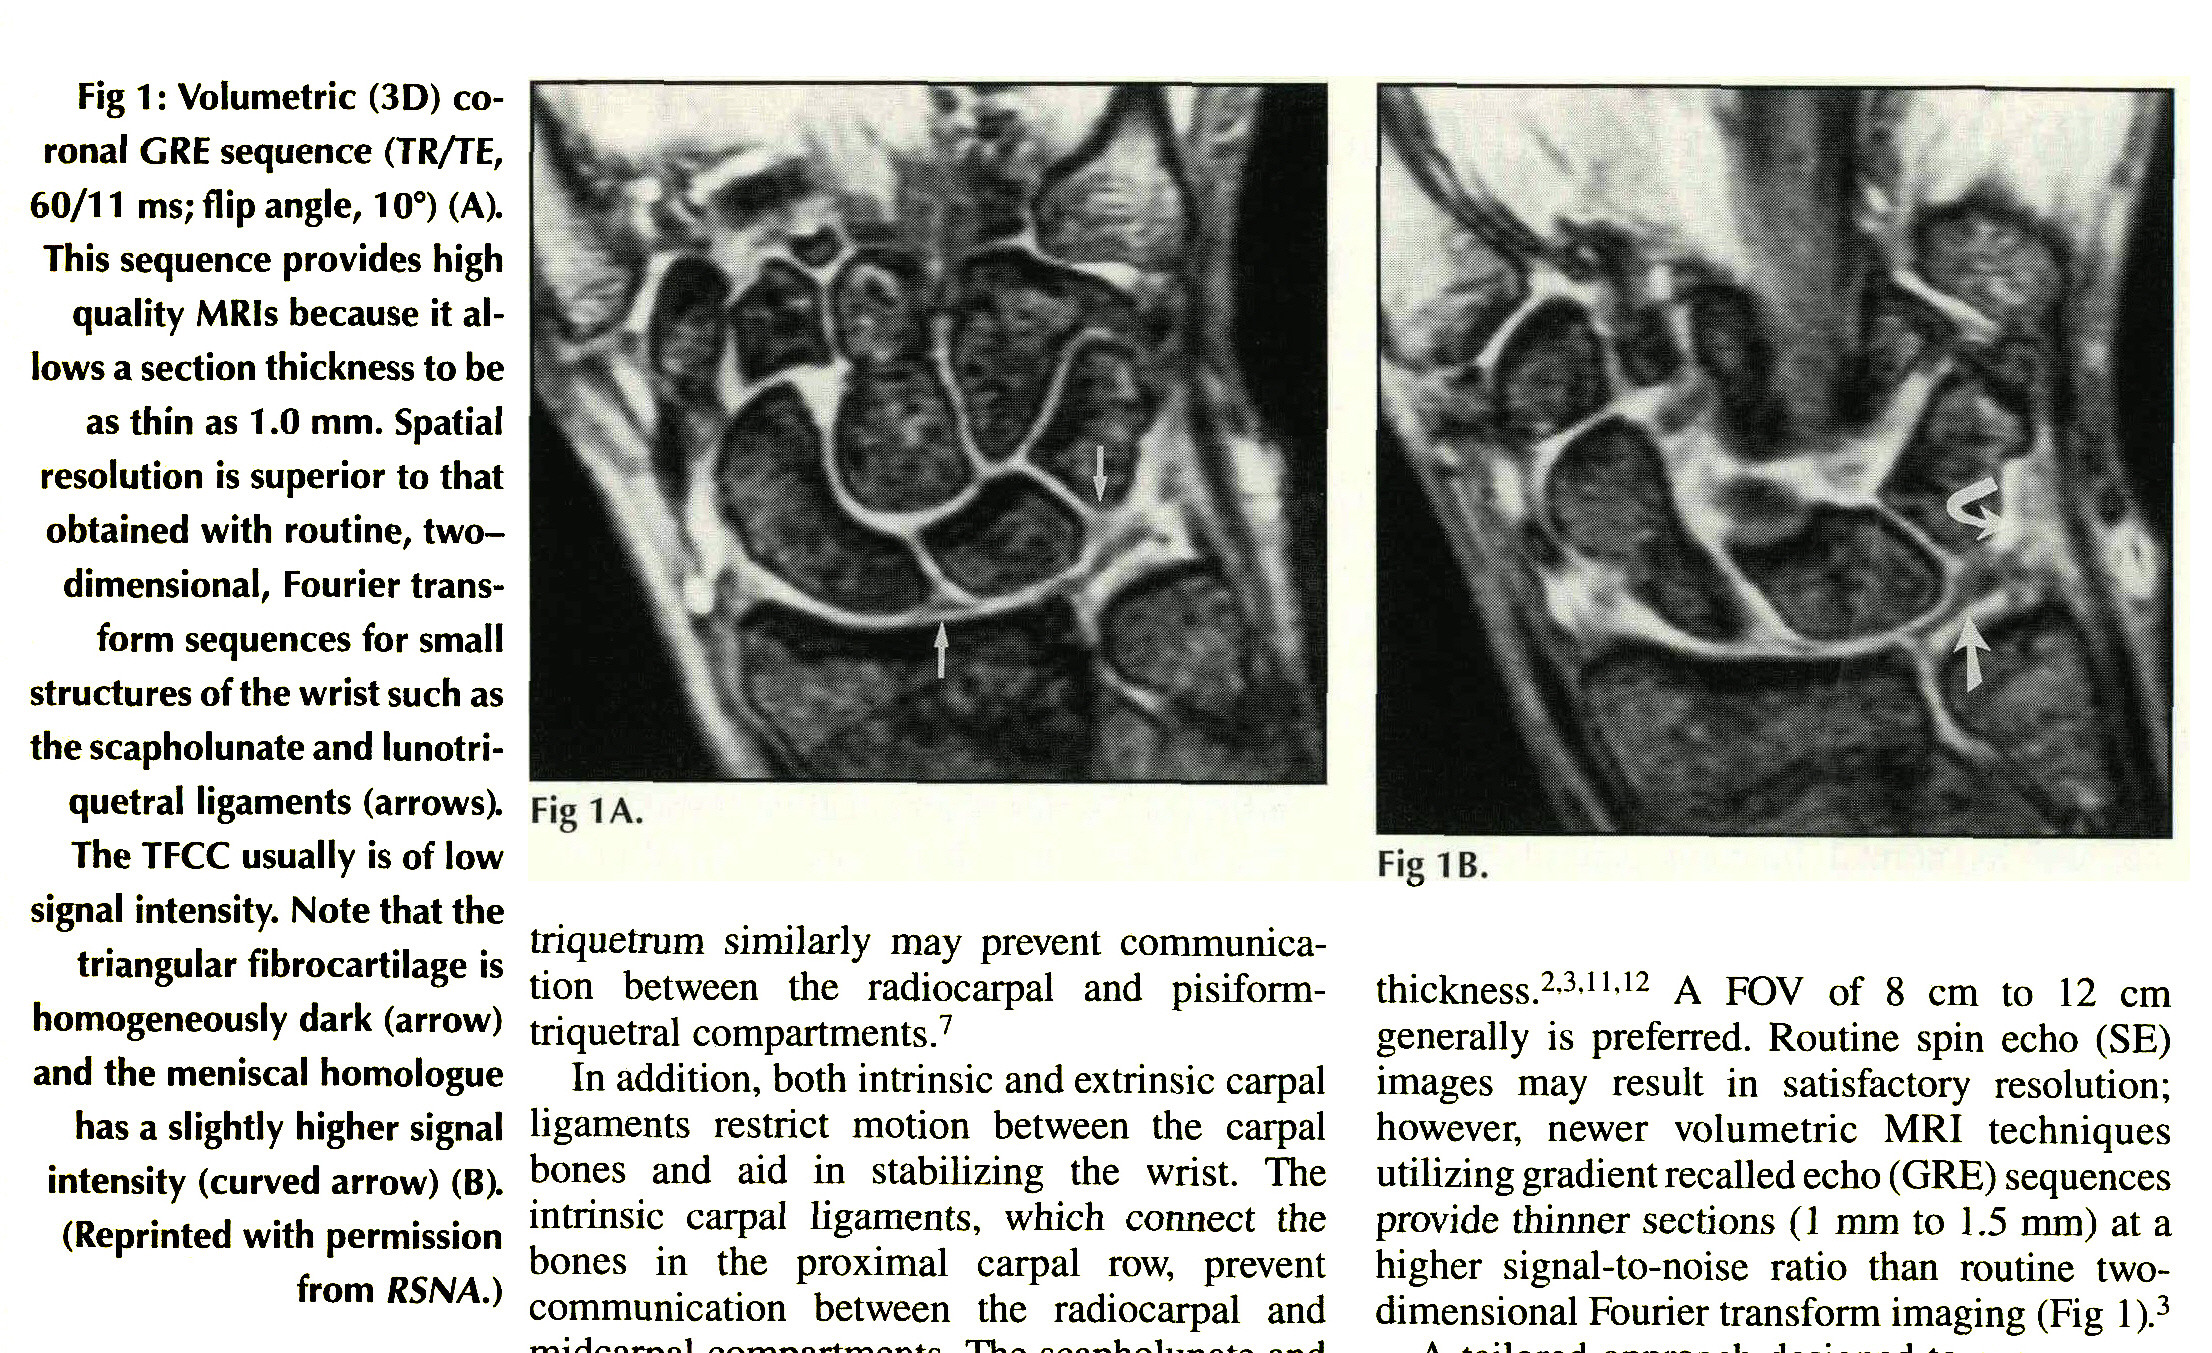 MAGNETIC RESONANCE IMAGING OF THE WRIST